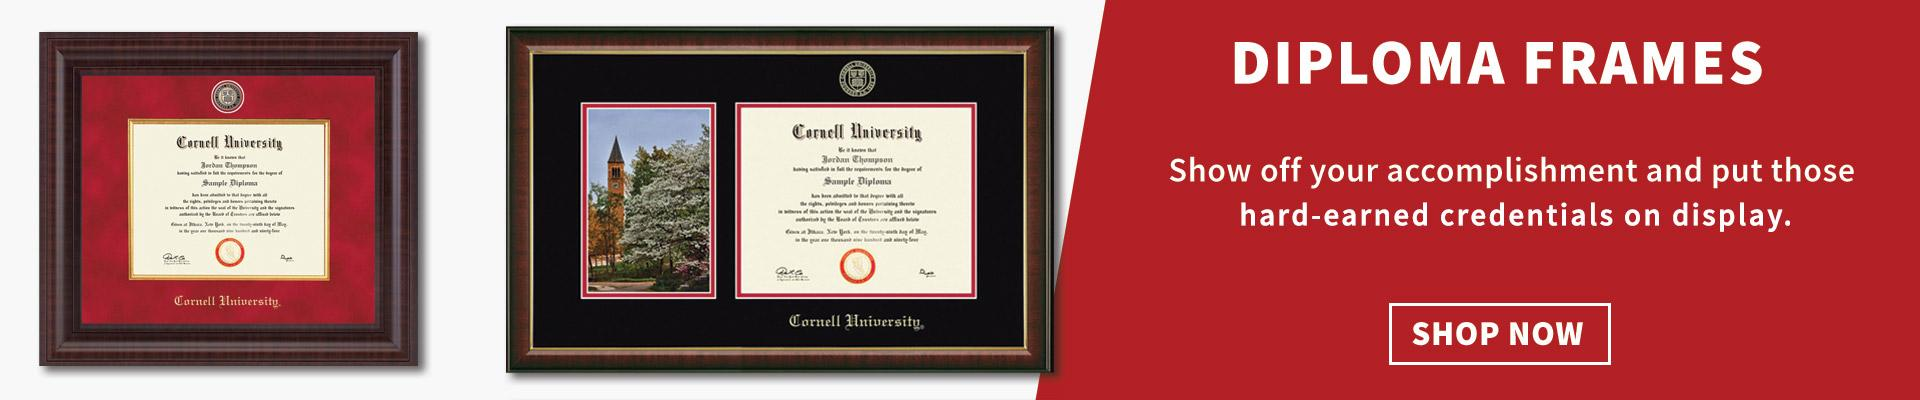 Shop Diploma Frames Now - image of Cornell University diploma frames